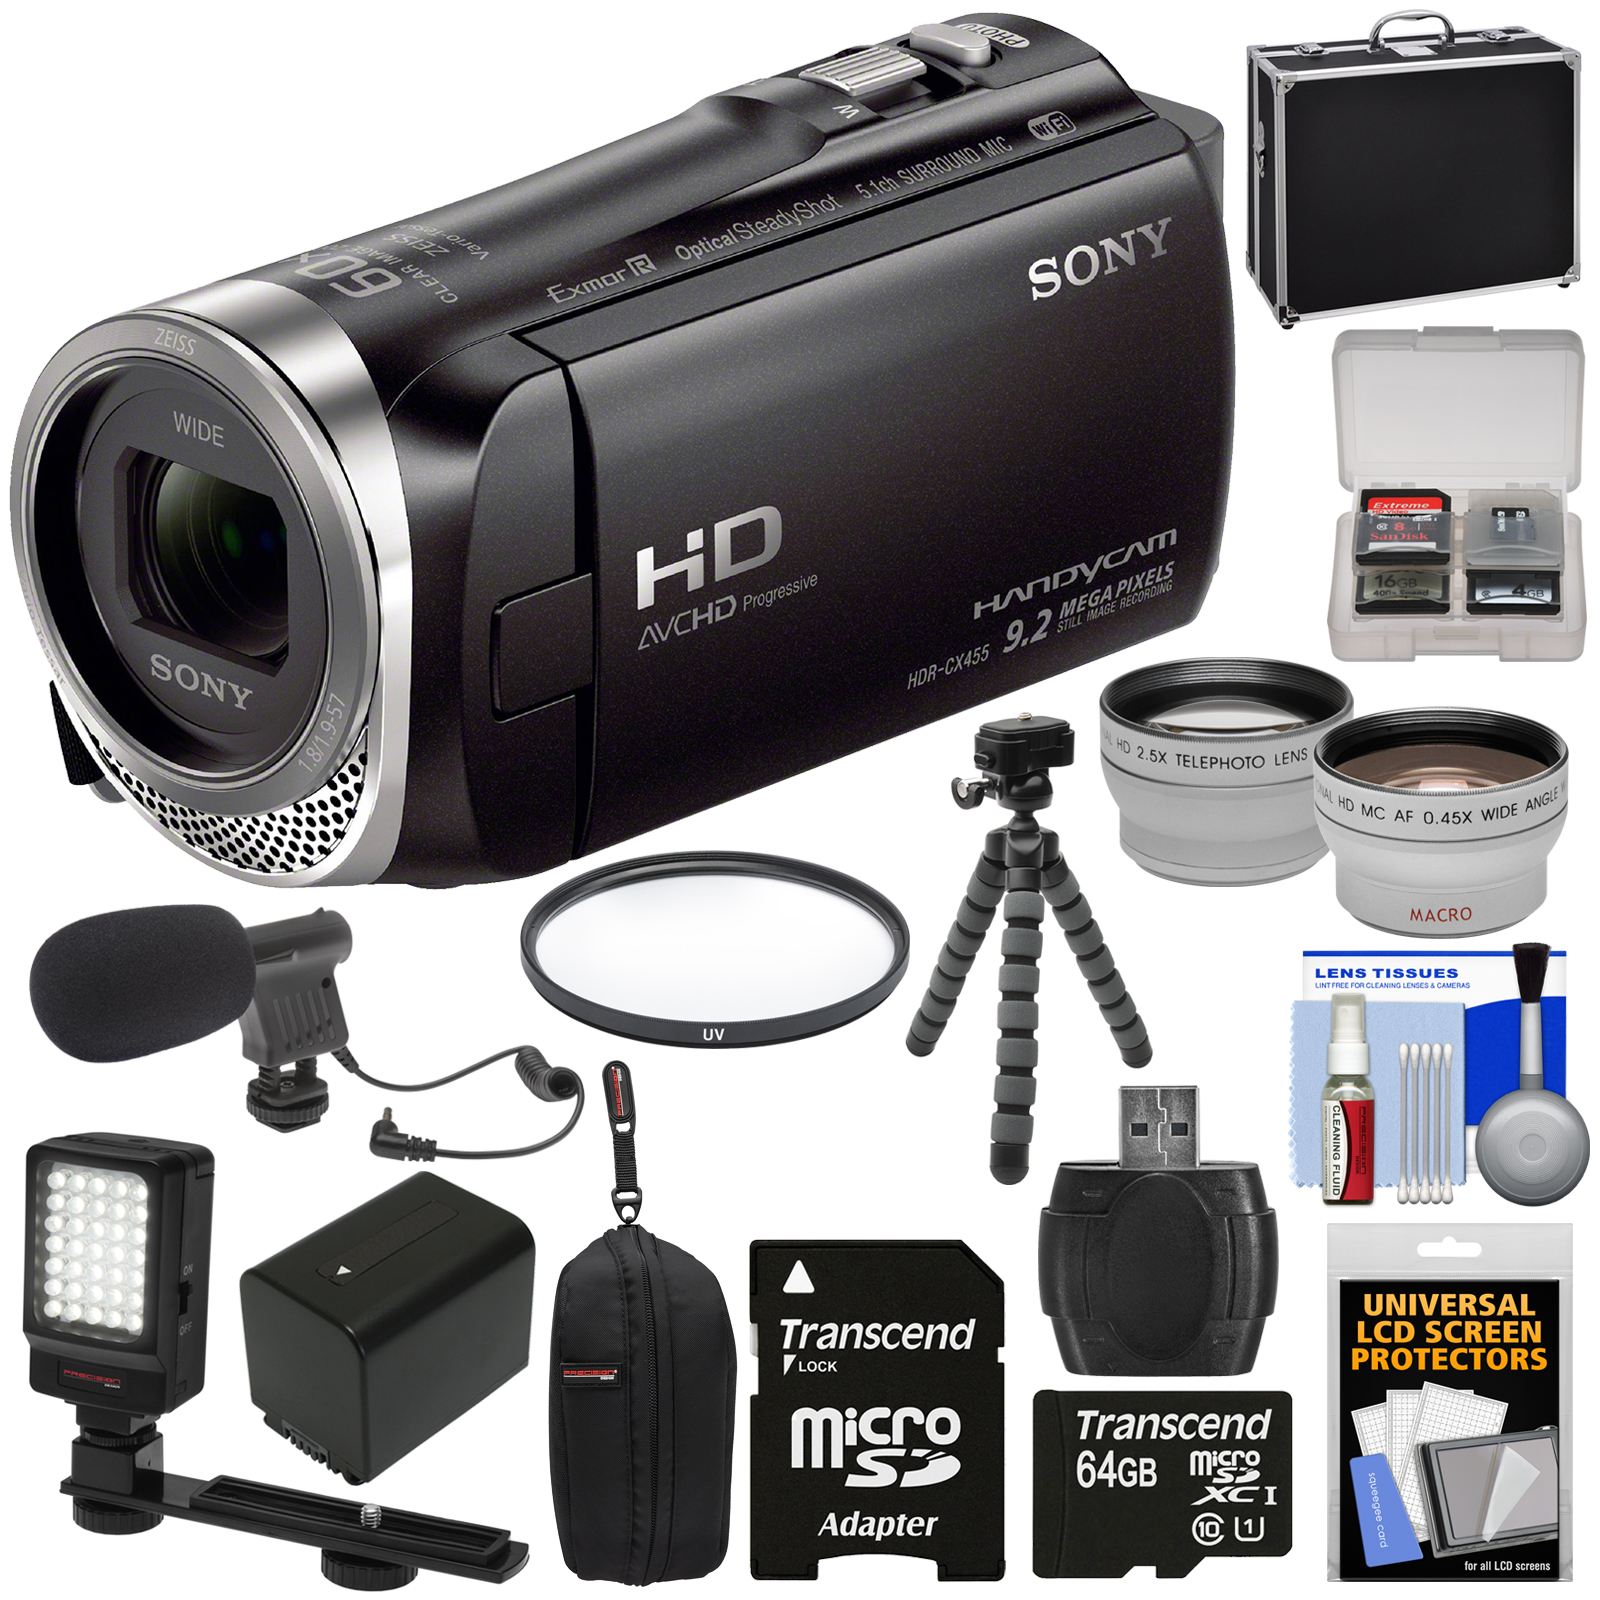 Sony Handycam HDR-CX455 8GB Wi-Fi HD Video Camera Camcord...